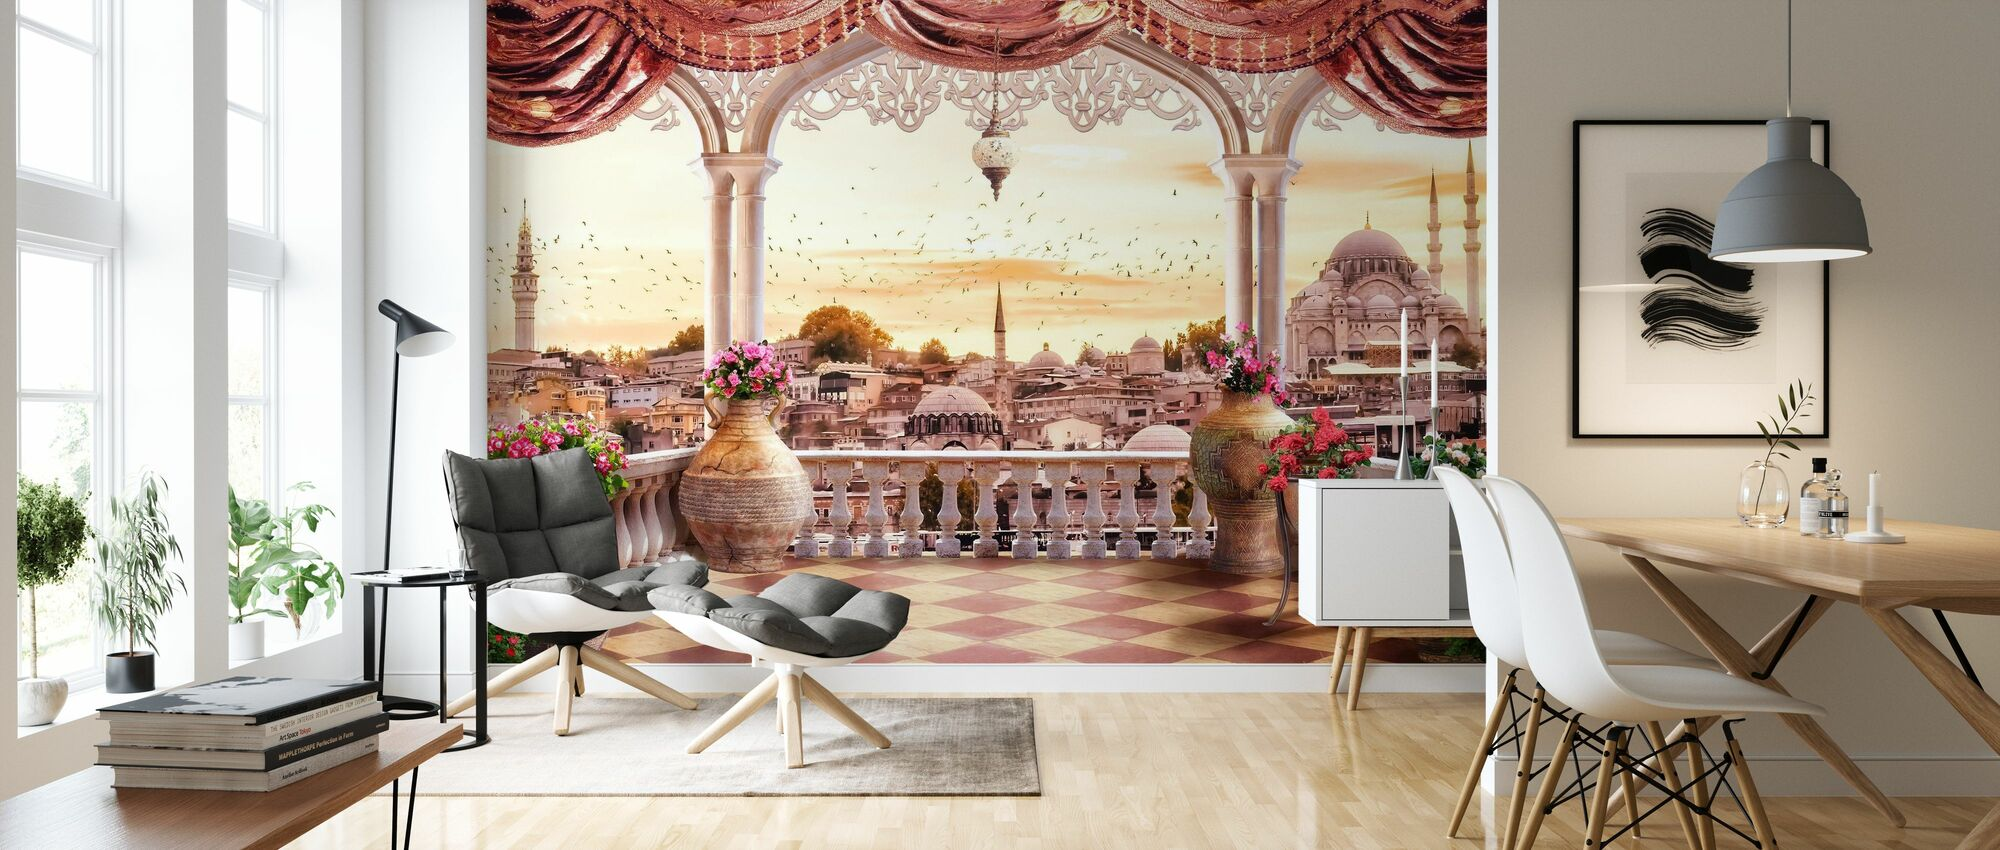 Istanbul Mosque - Wallpaper - Living Room